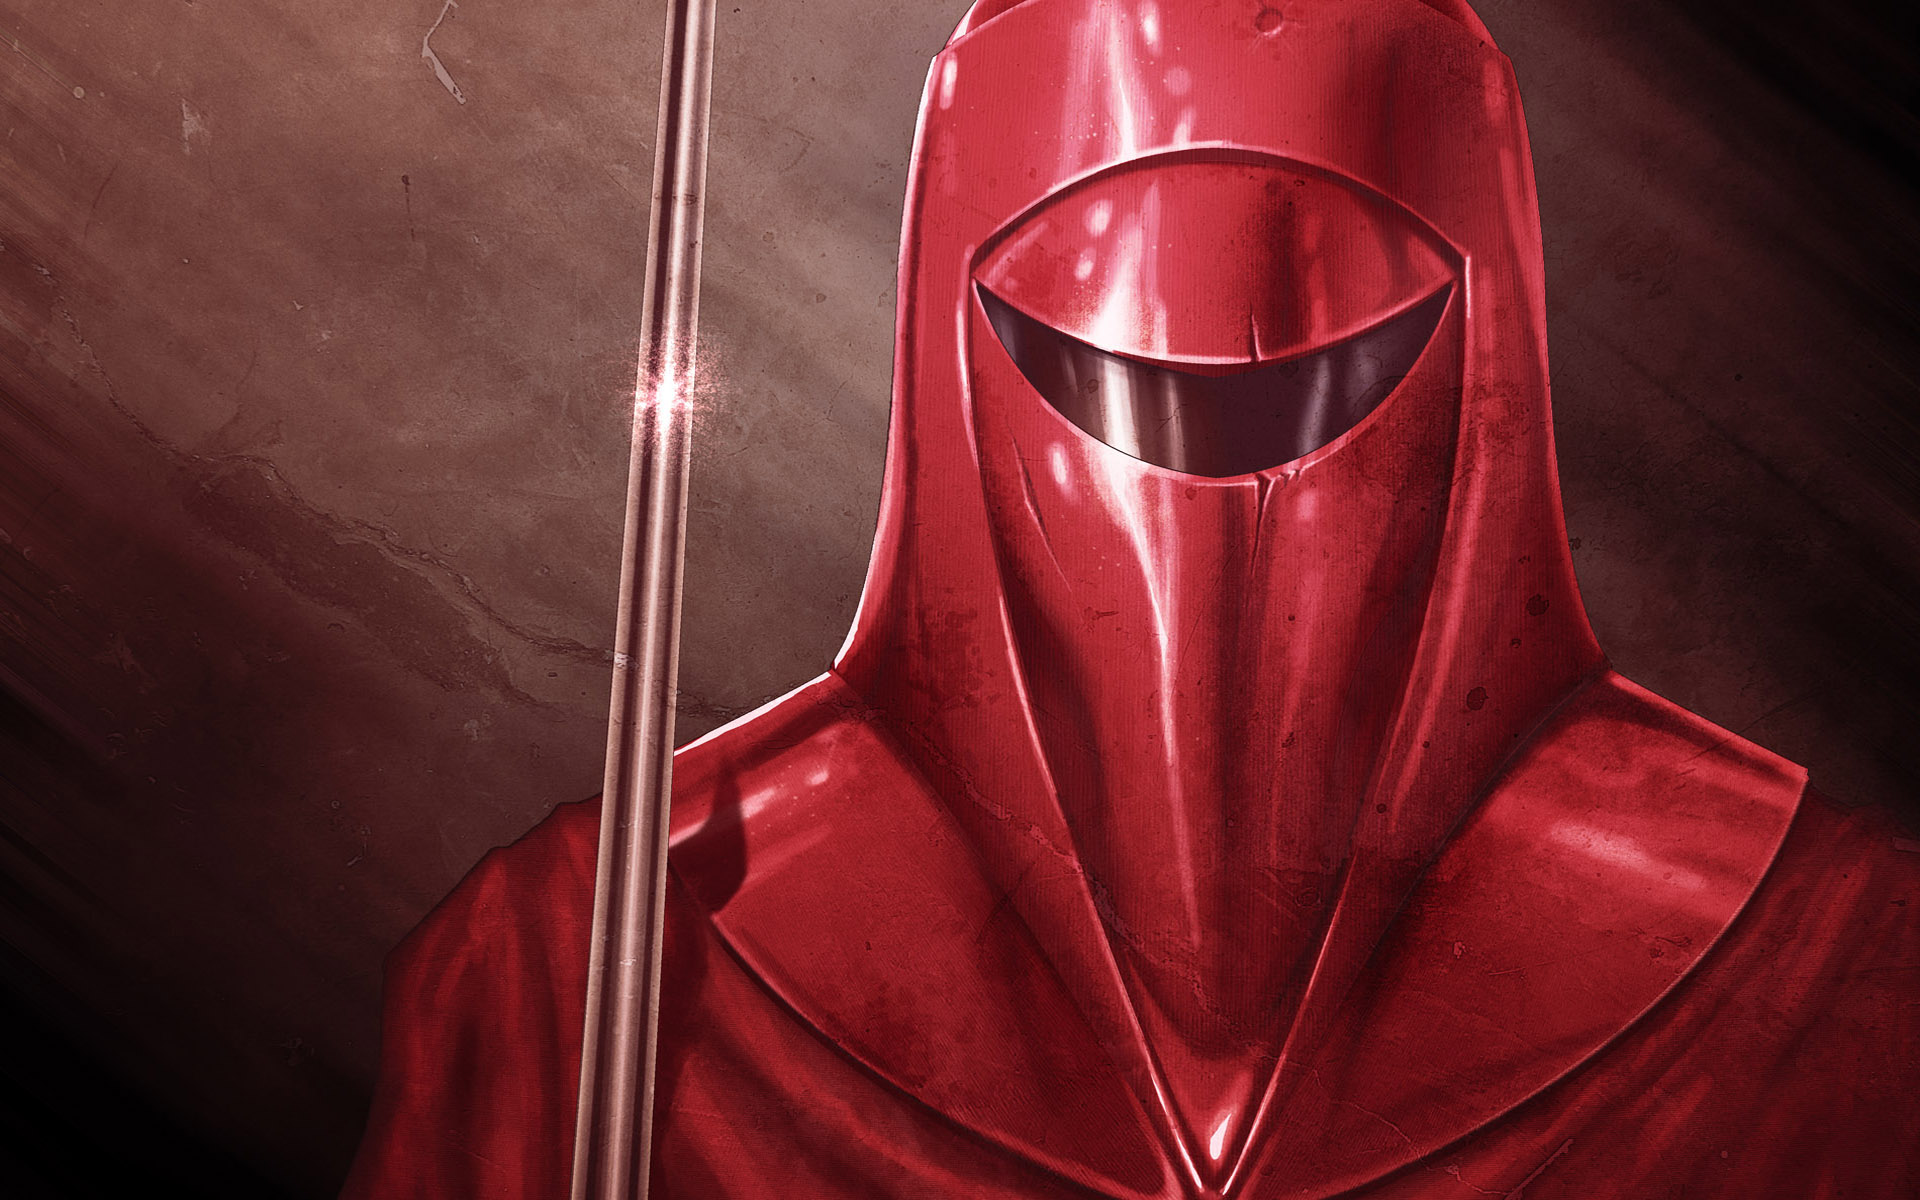 Imperial Guard Star Wars Christmas Beauty Photos Wallpapers Imperial Guard Star Wars Christmas Beauty Photo